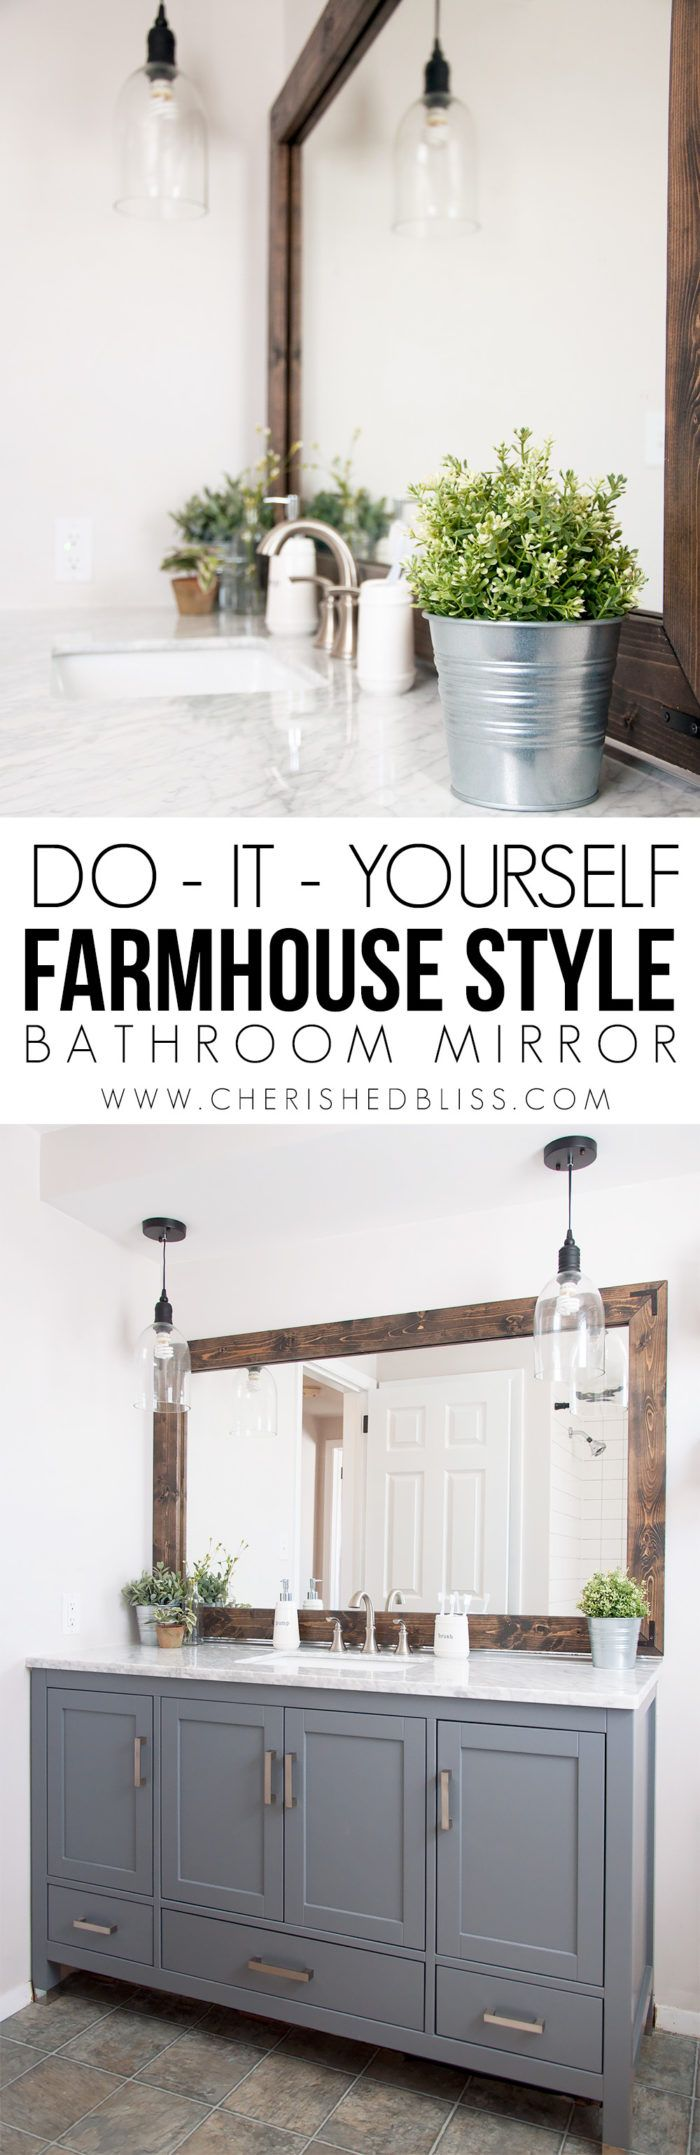 Bathroom Mirror Edge Trim 25+ best mirror trim ideas on pinterest | diy framed mirrors, diy